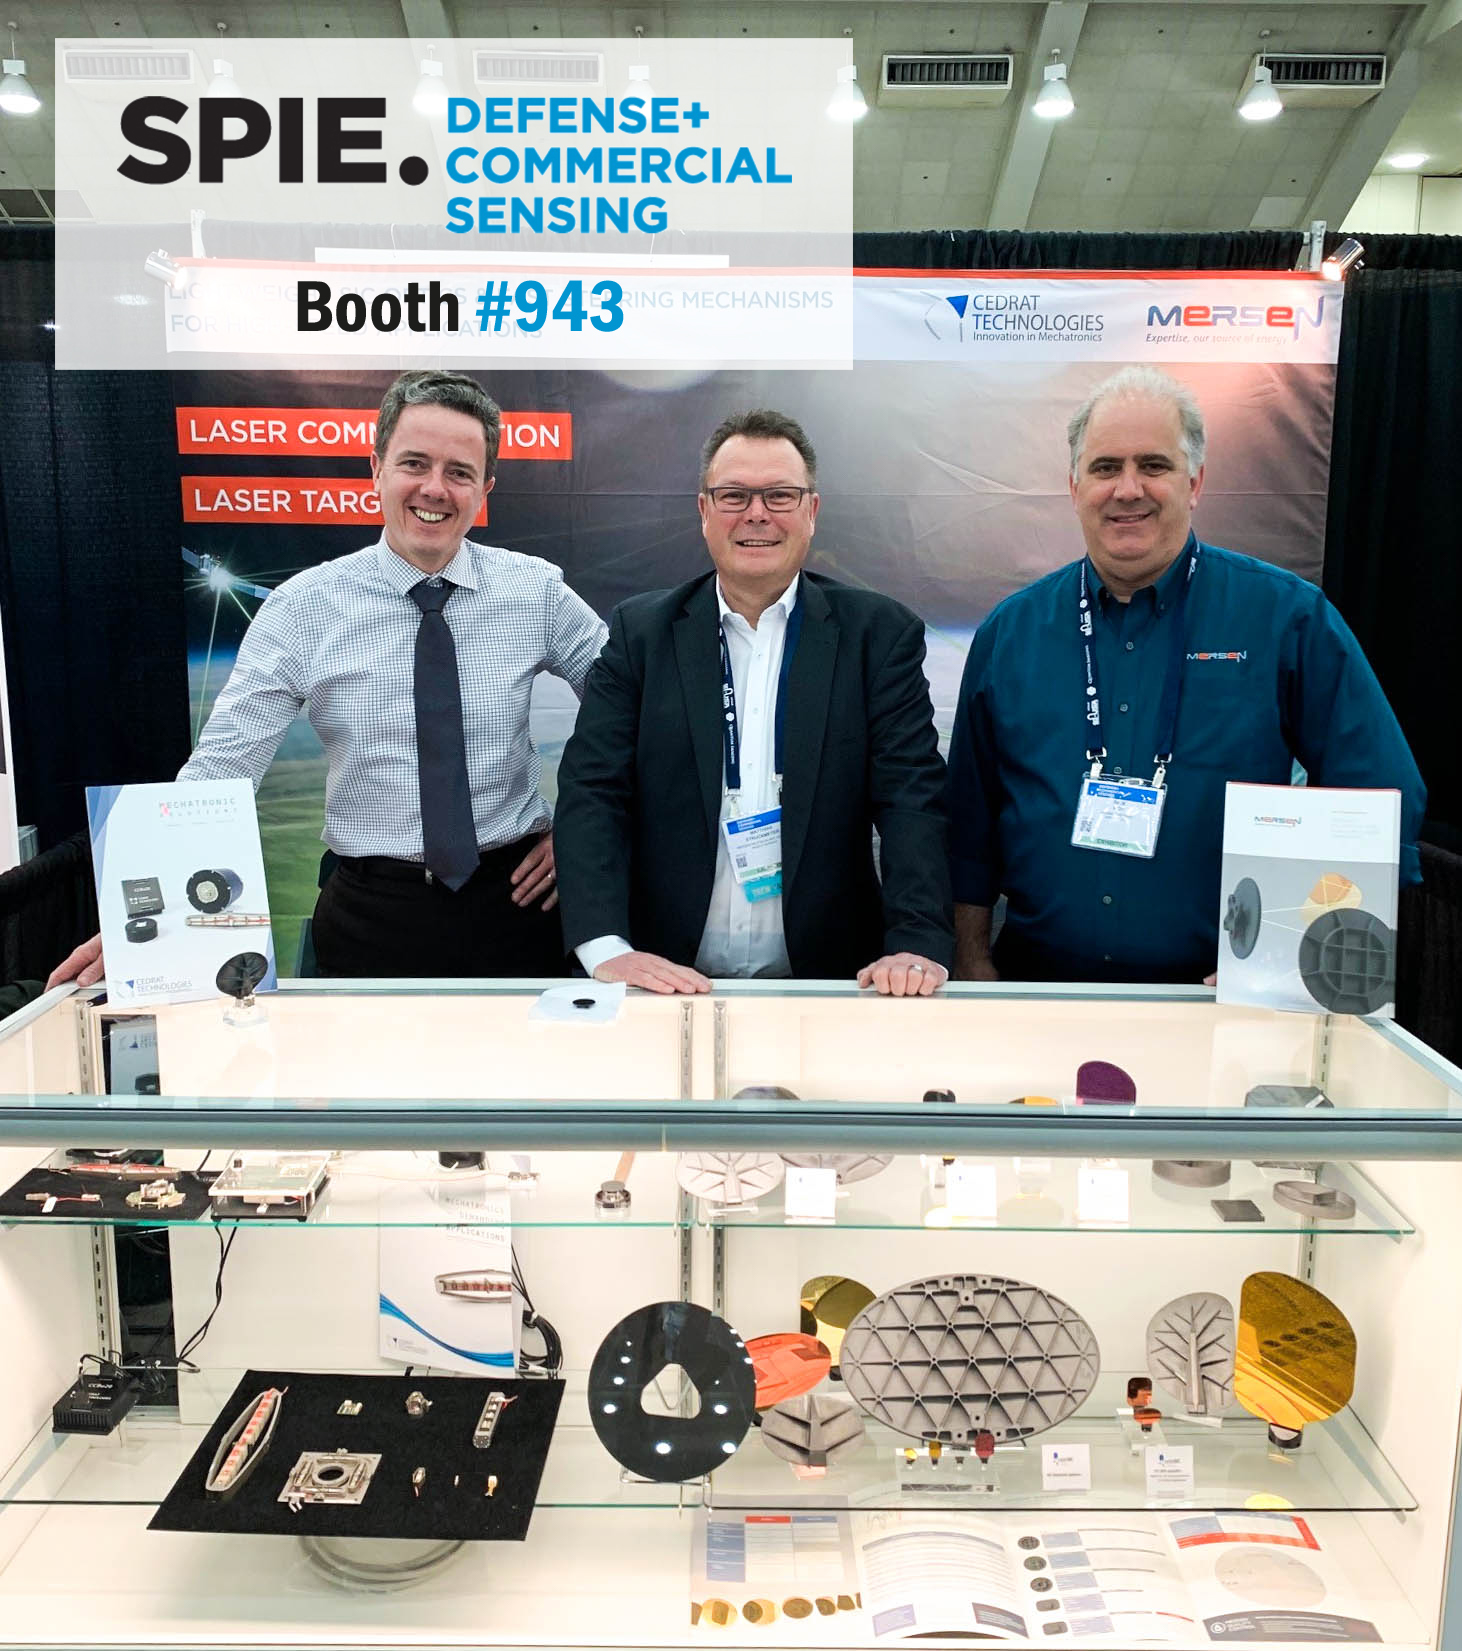 SPIE DCS BOOTH 943